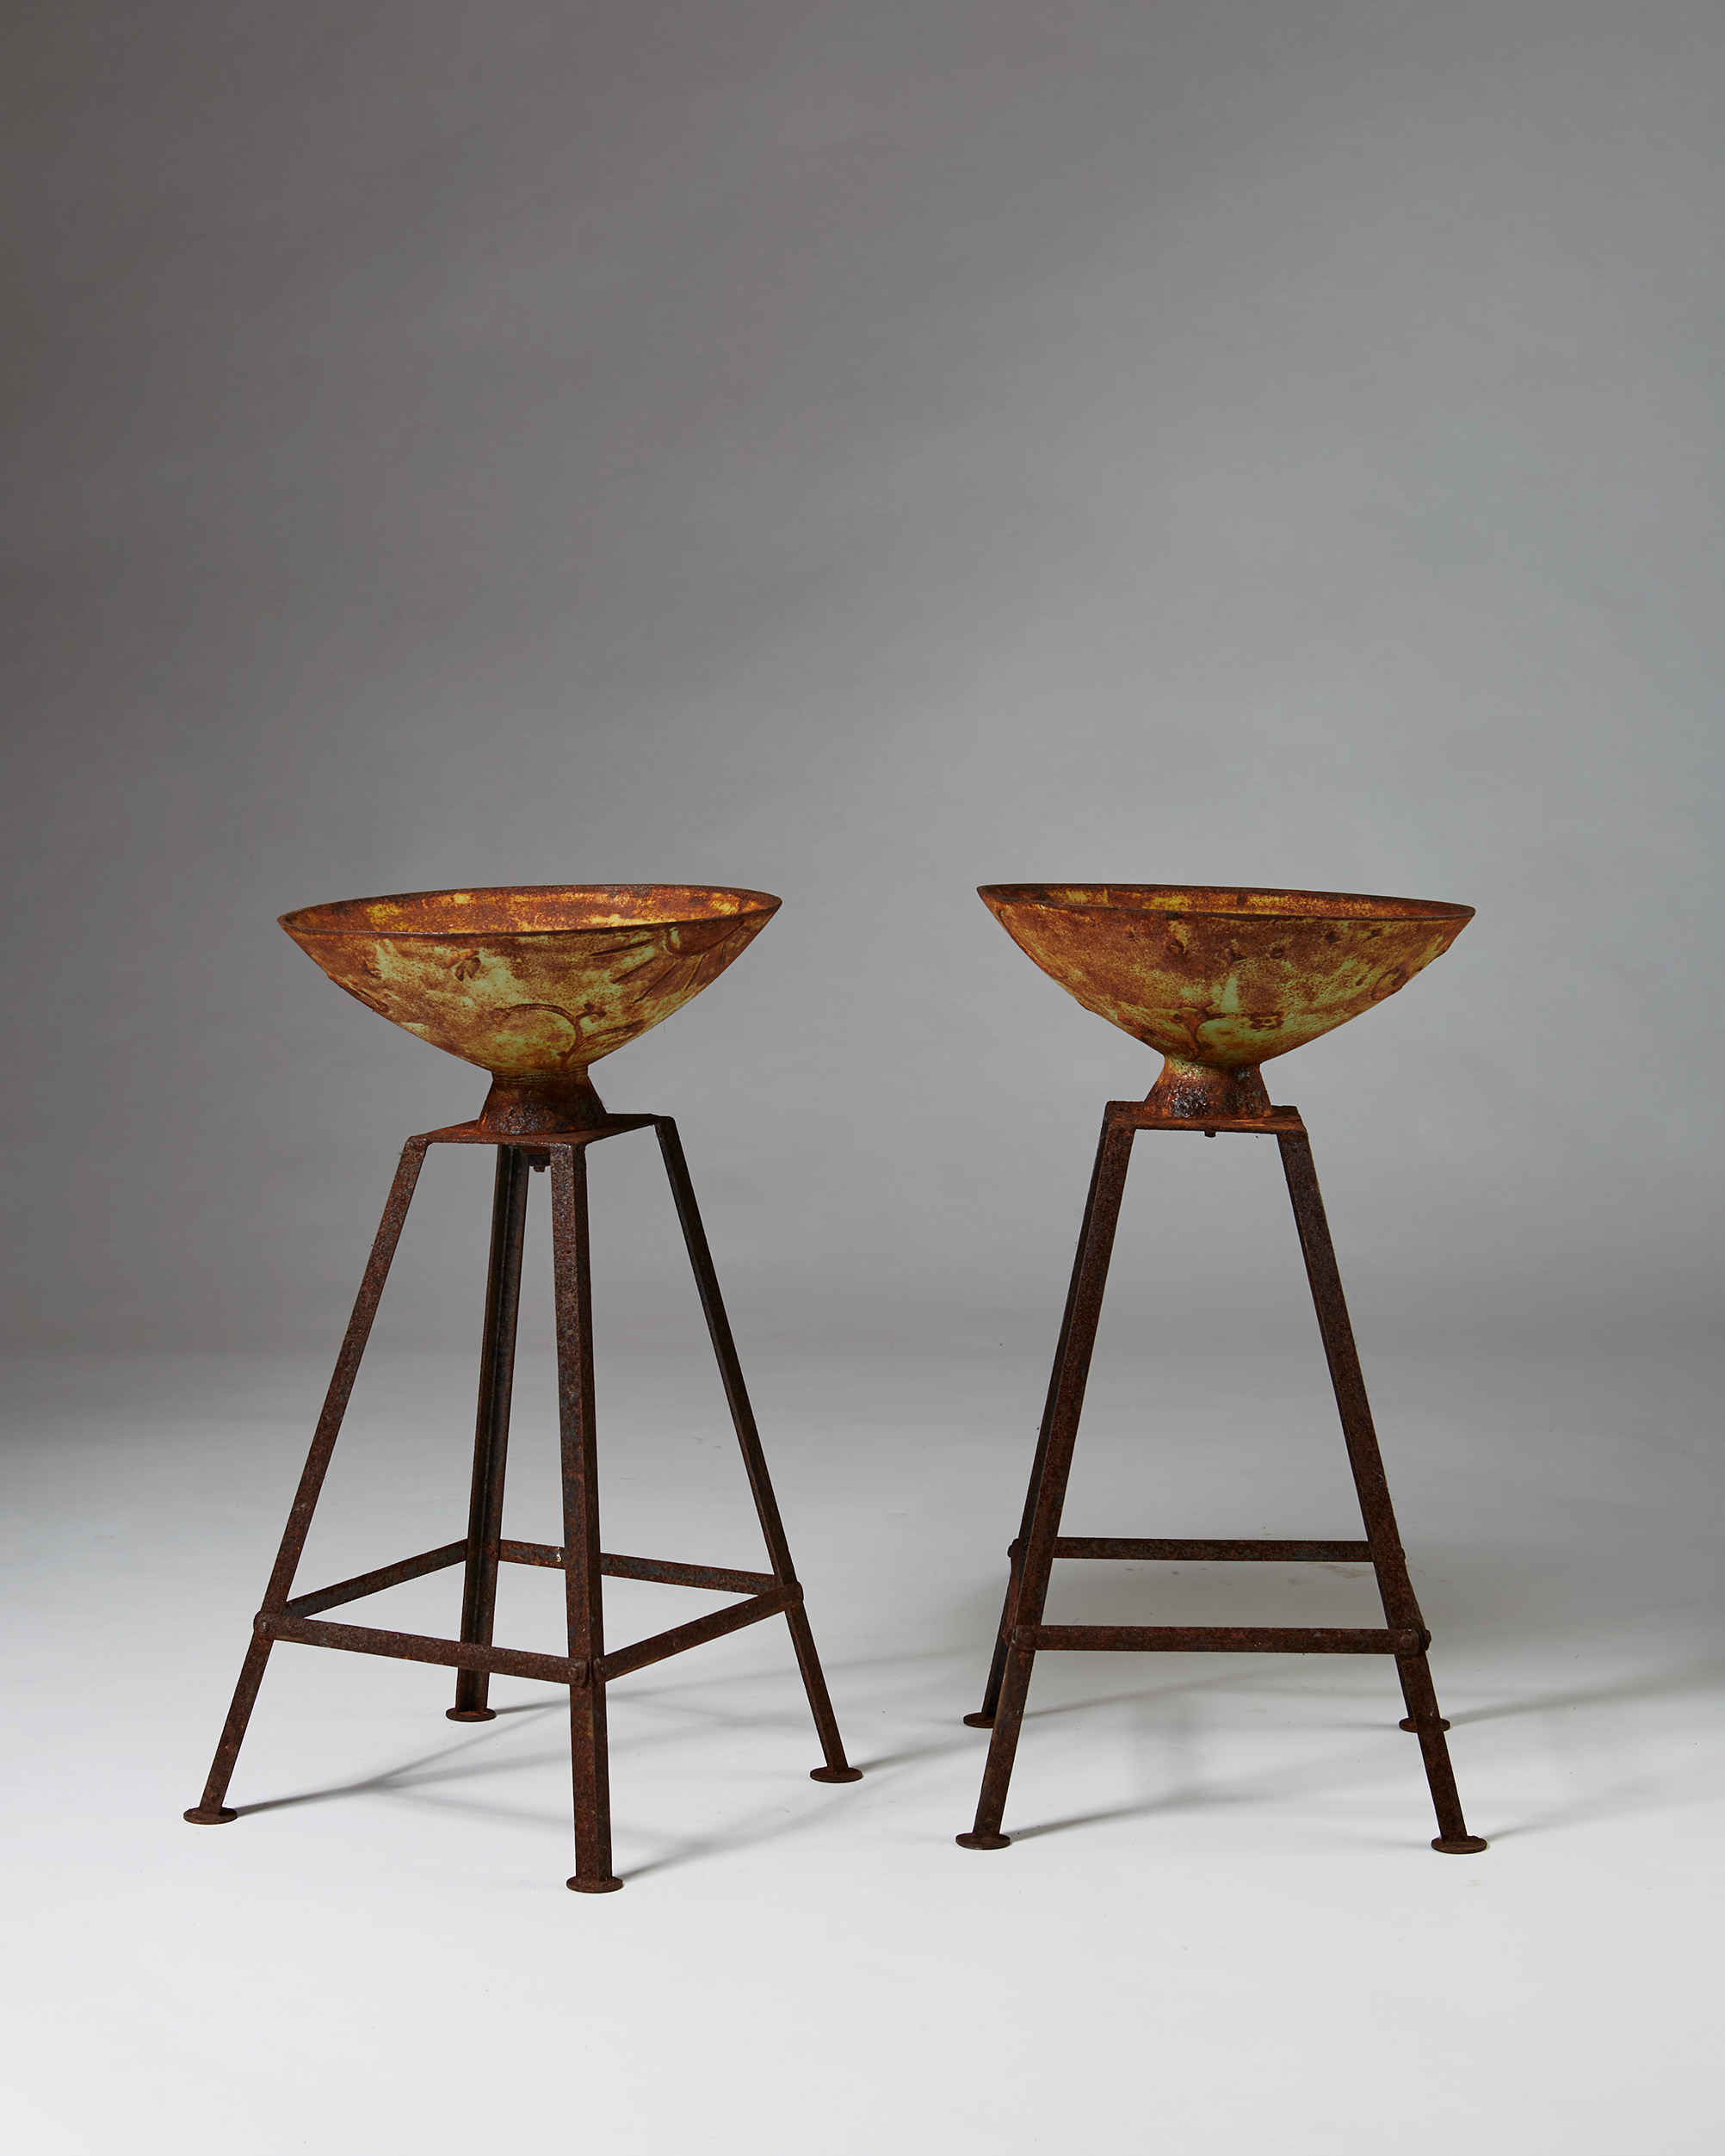 Pair of Planters 'Mikrokosmos' designed by Olof Hult för Näfveqvarns Bruk, Sweden. 1922. by Modernity on curated-crowd.com